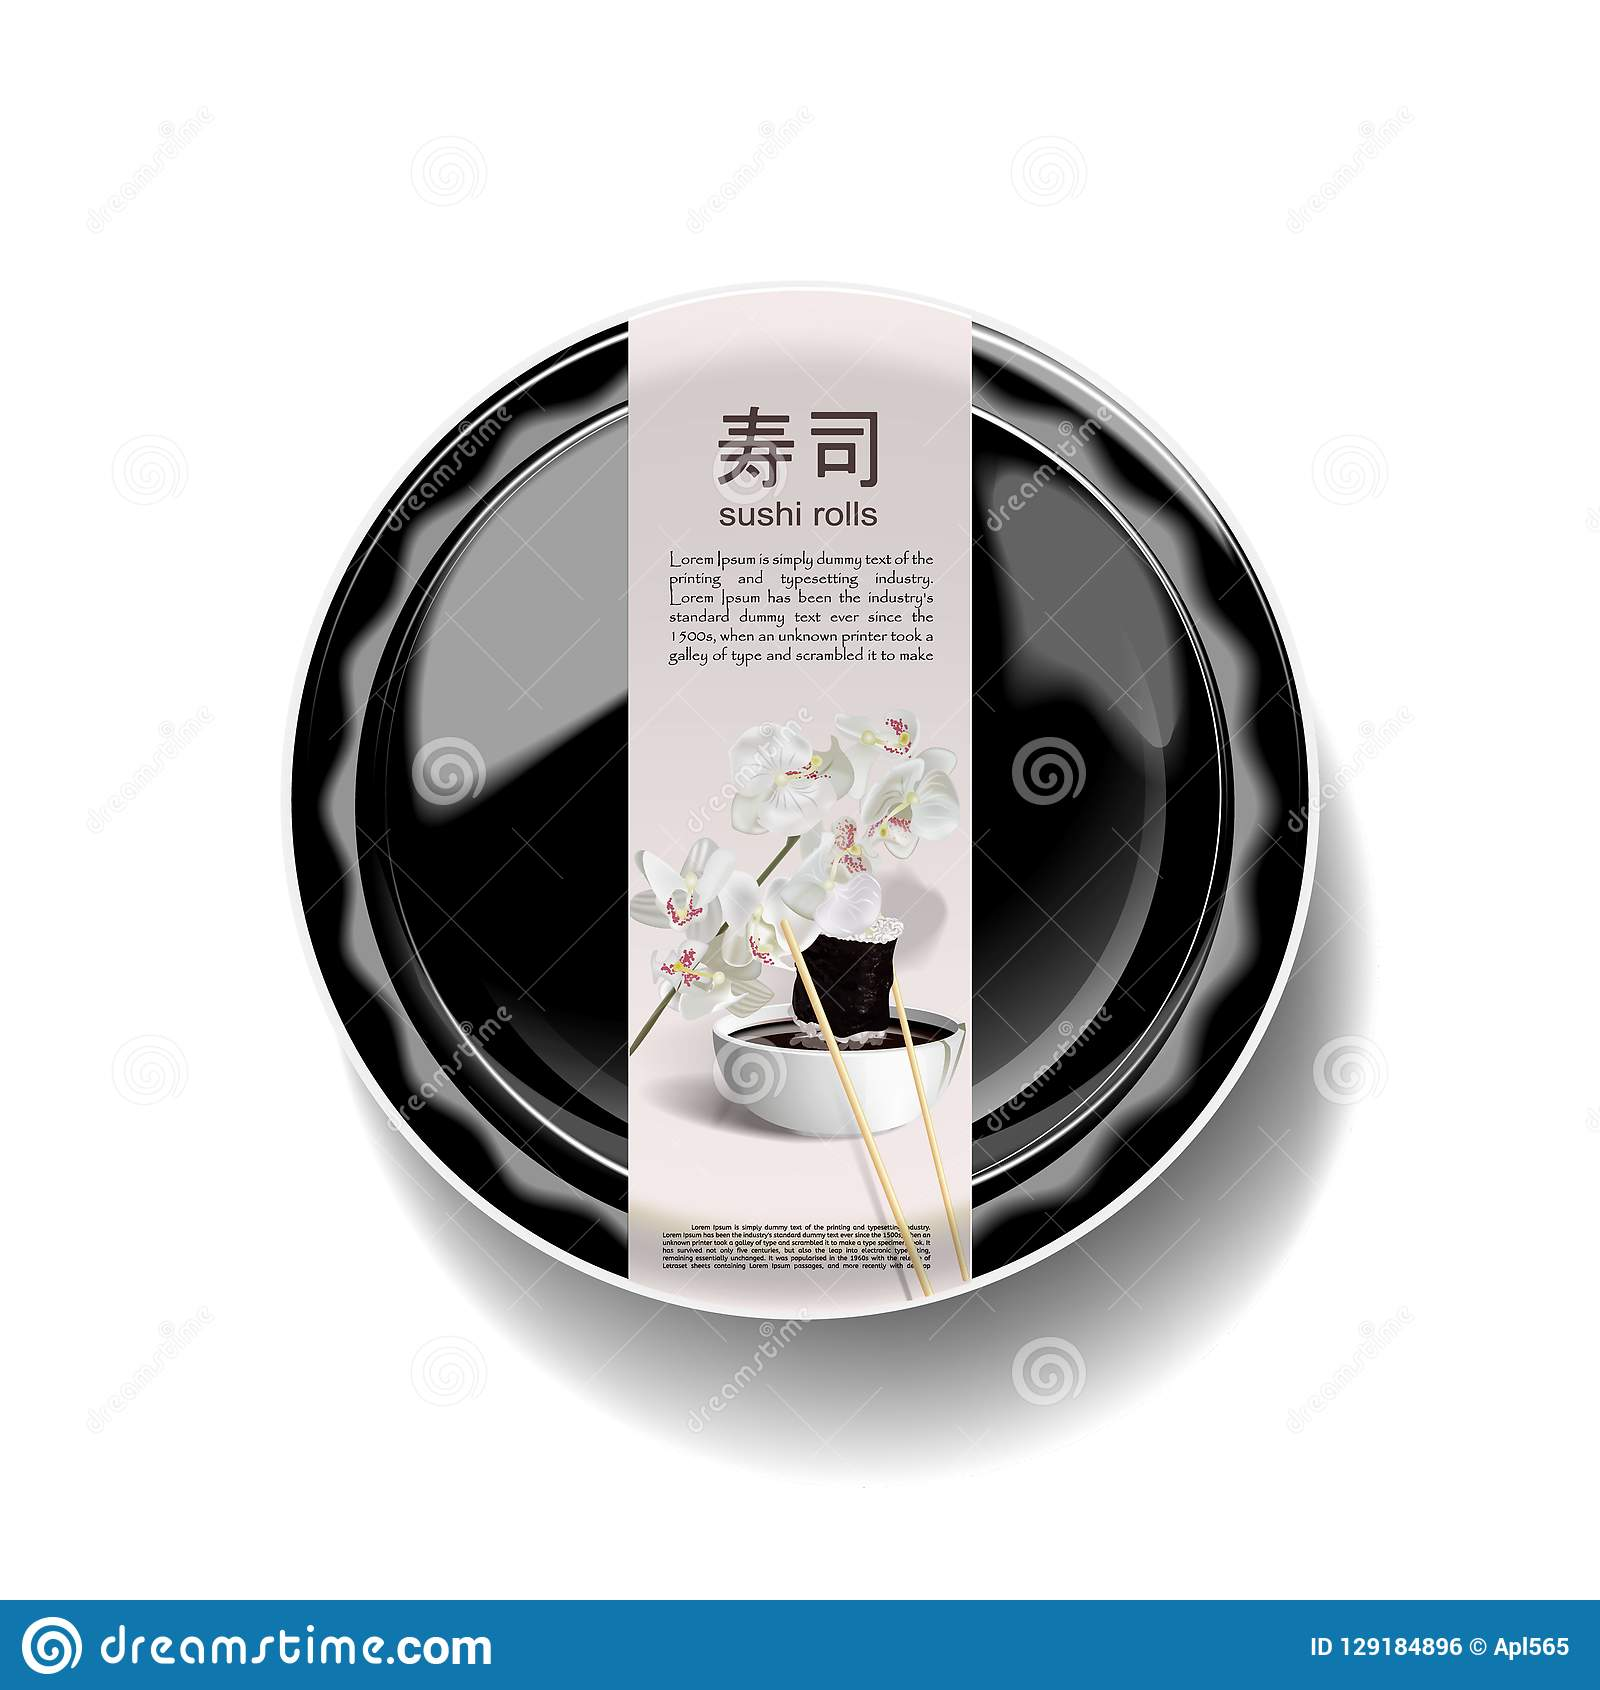 Empty plastic container for sushi. Isolated on white background.